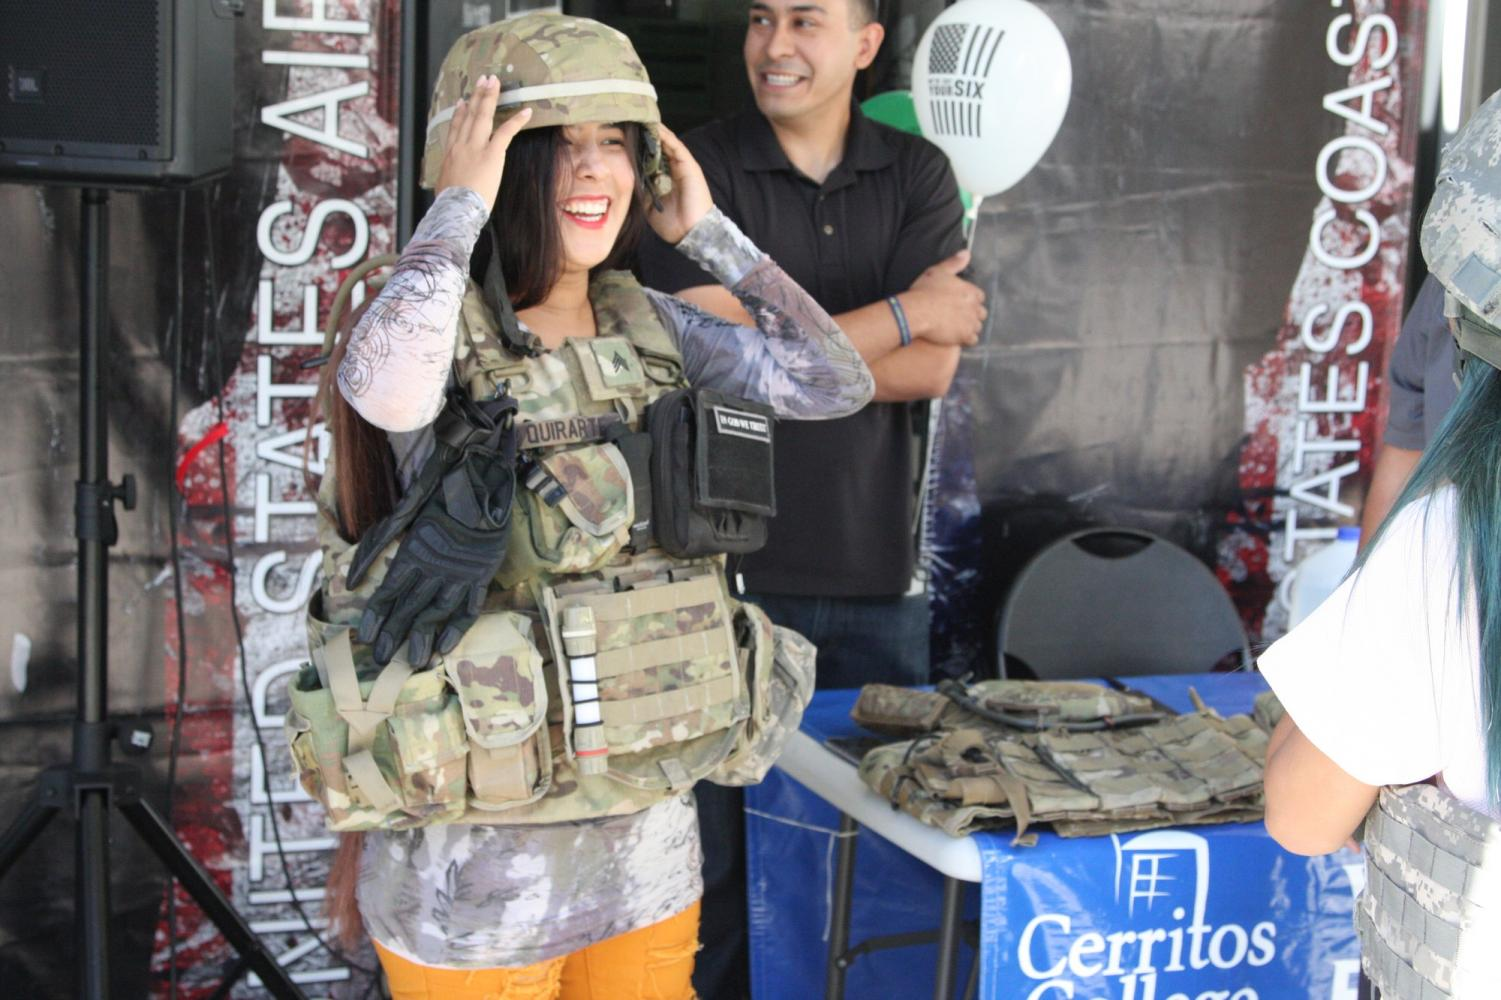 Kemberly Enriquez trying on army gear with the permission of the veterans. Enriquez and the Homecoming Queen Jazmine Jose were taking pictures wearing the gear. Photo credit: David Jenkins